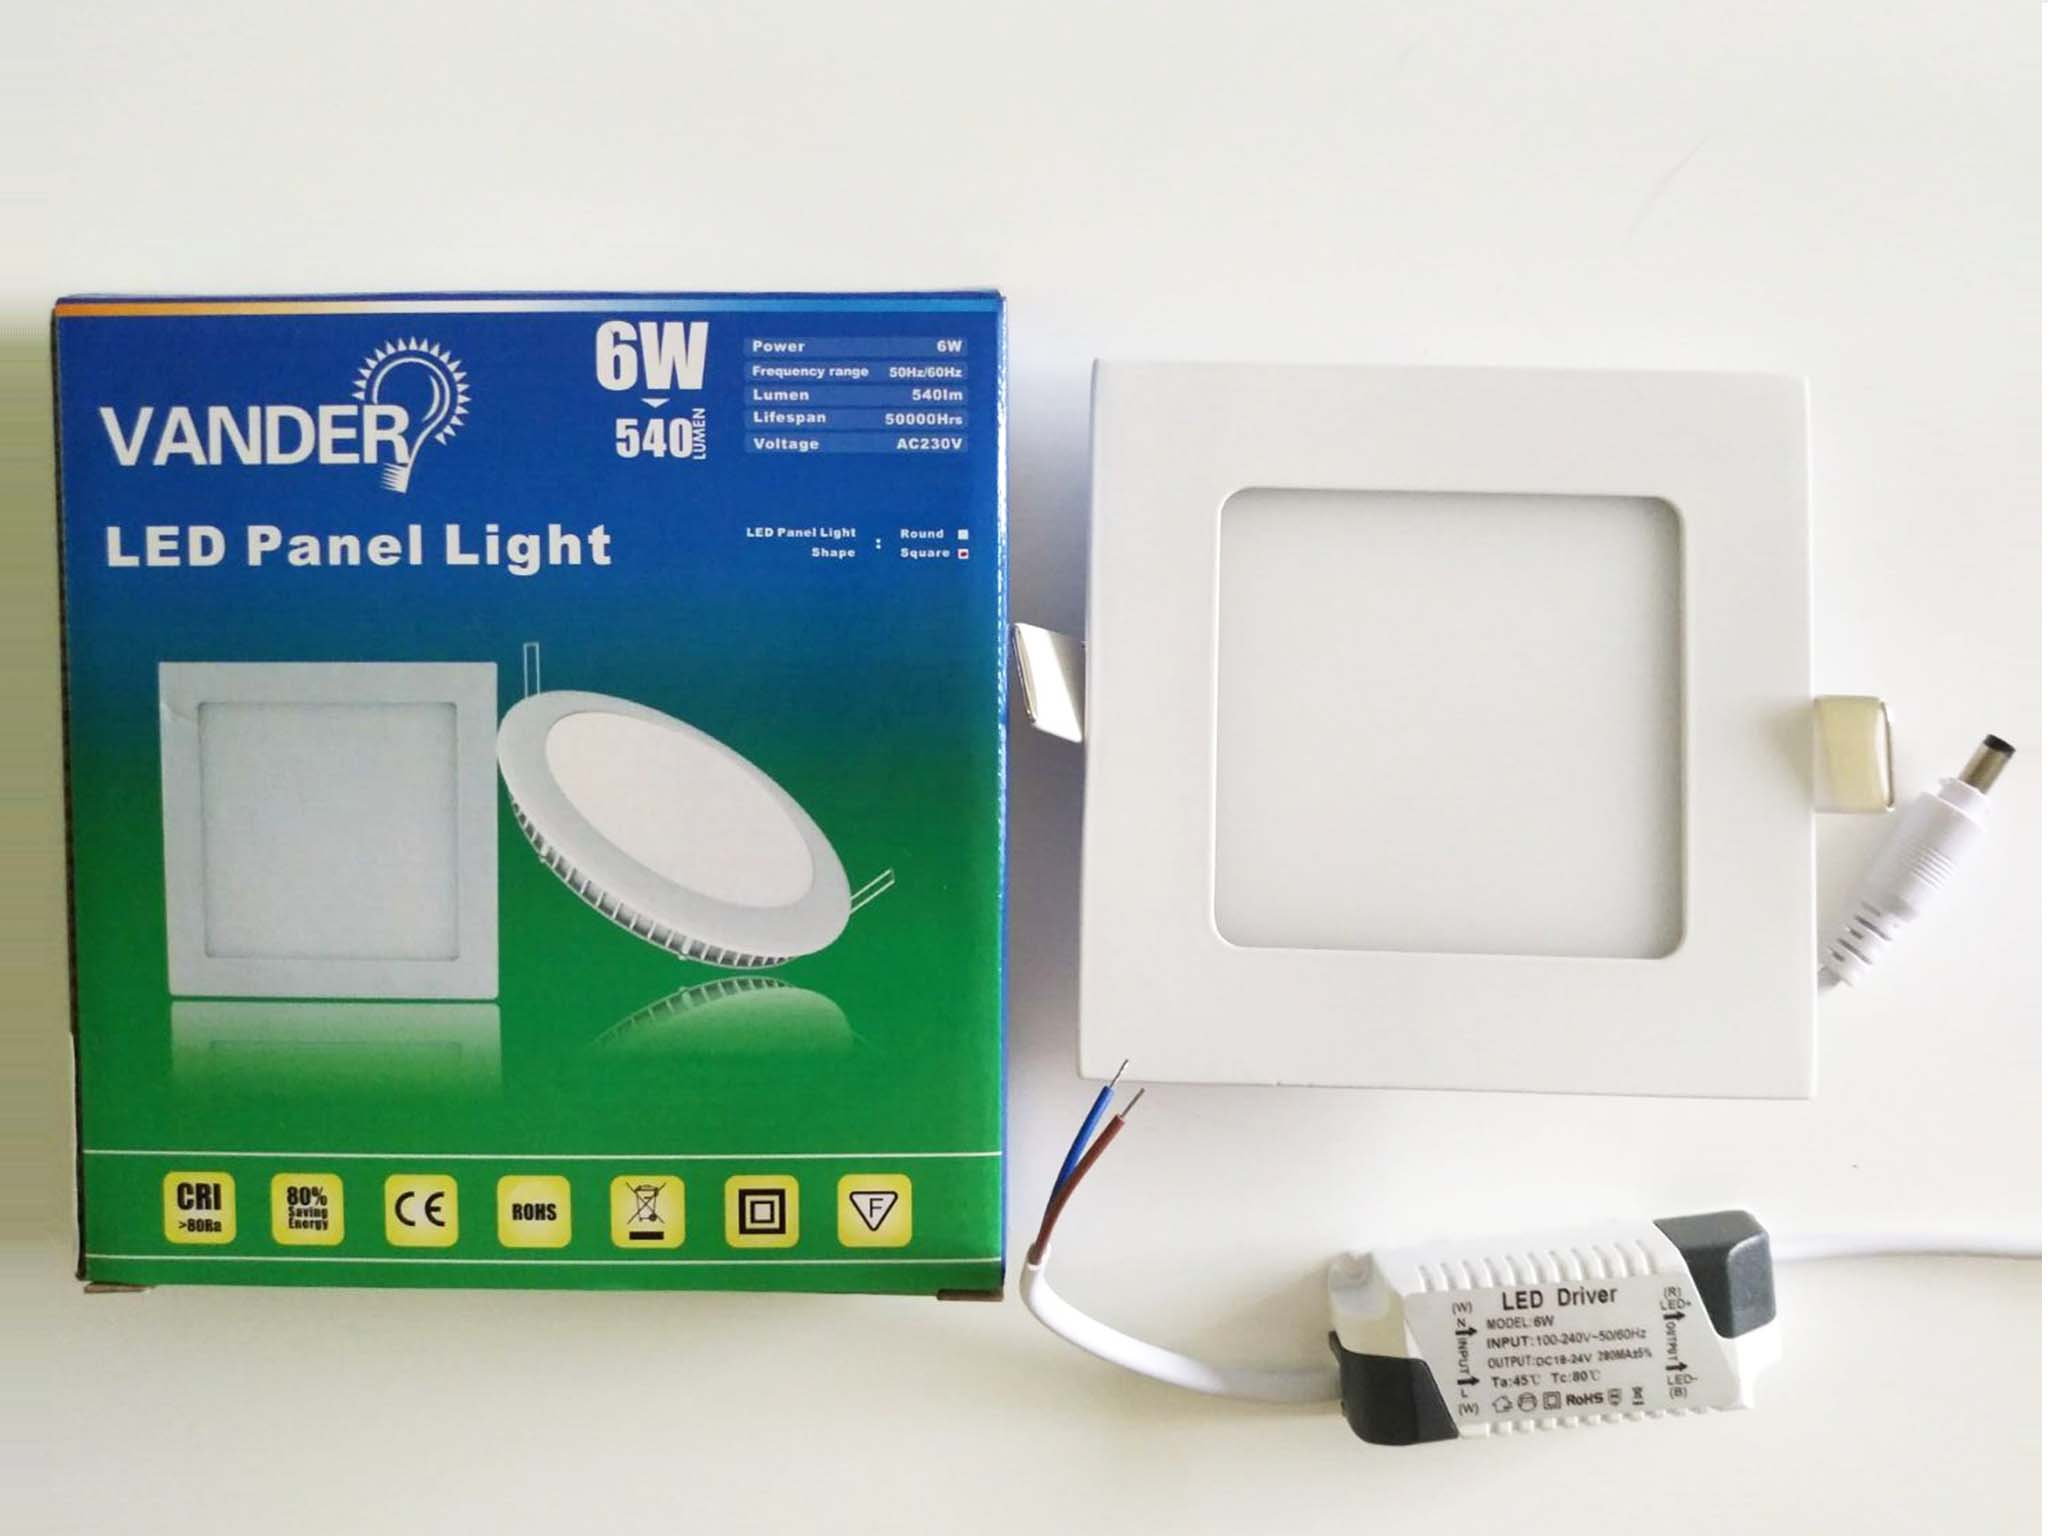 Colorful box package LED panel light 6W